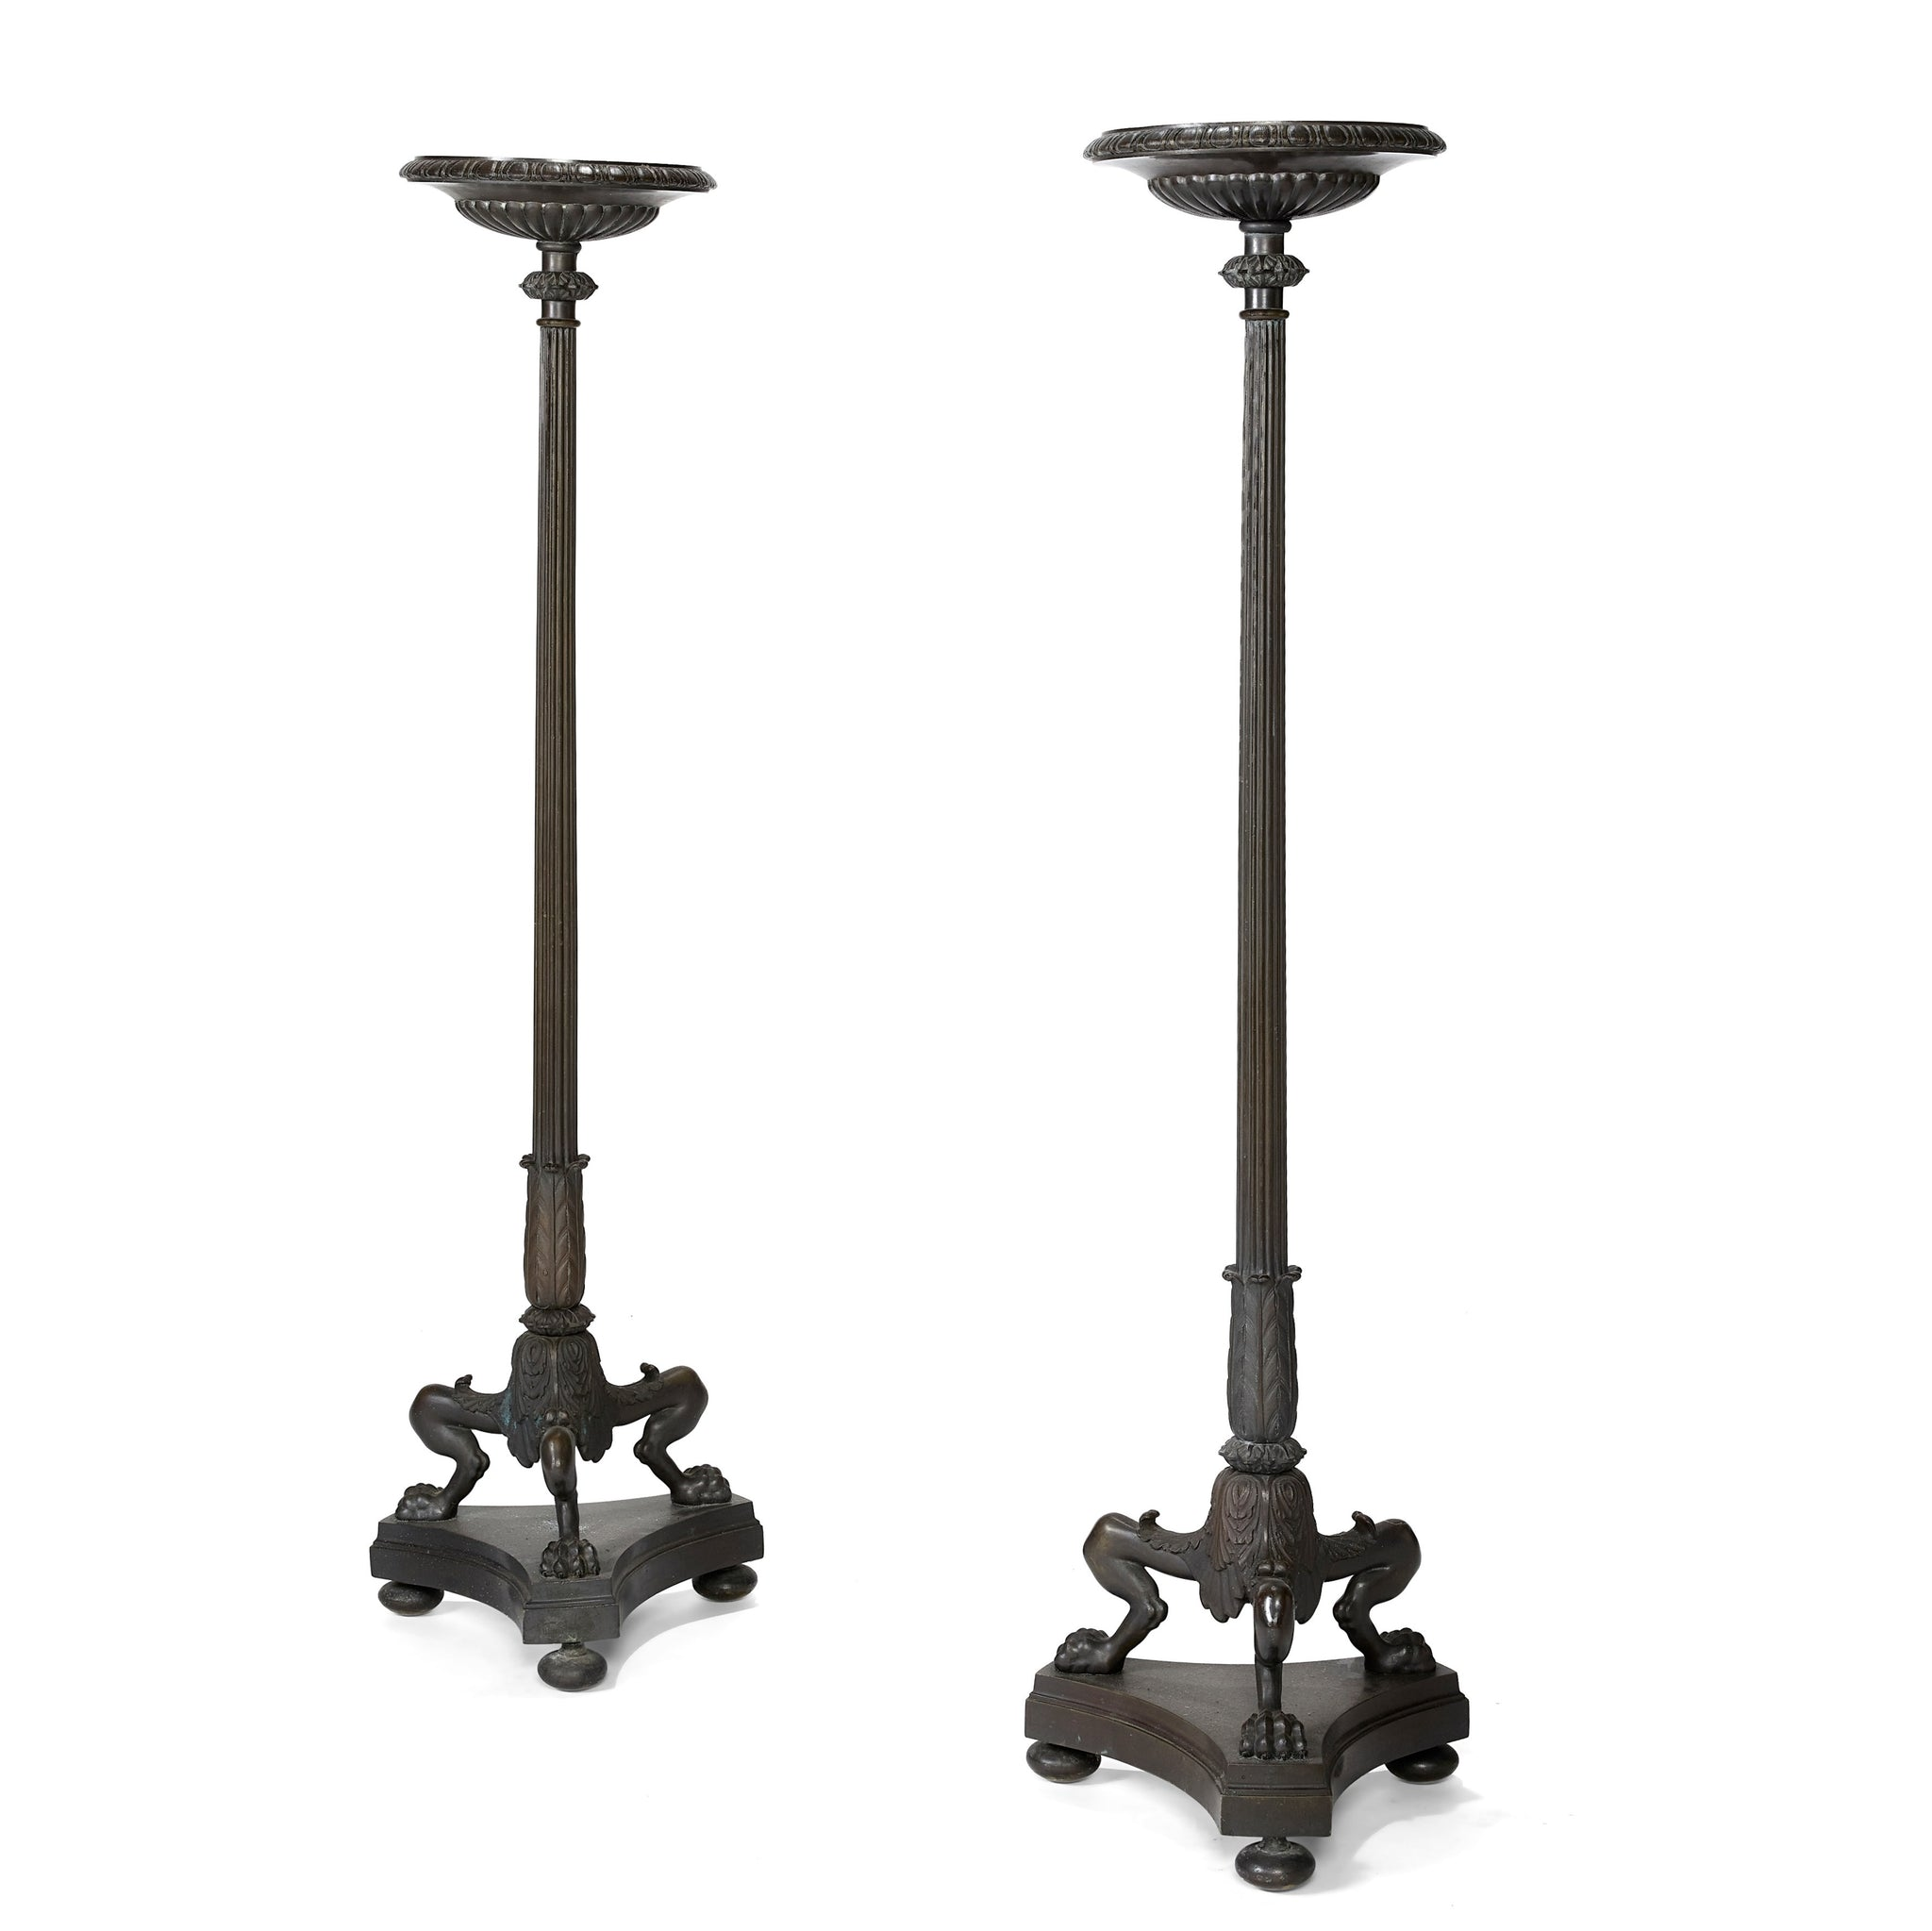 Pair of Bronze Floor Standing Caldelabri in the Manner of Thomas Hope